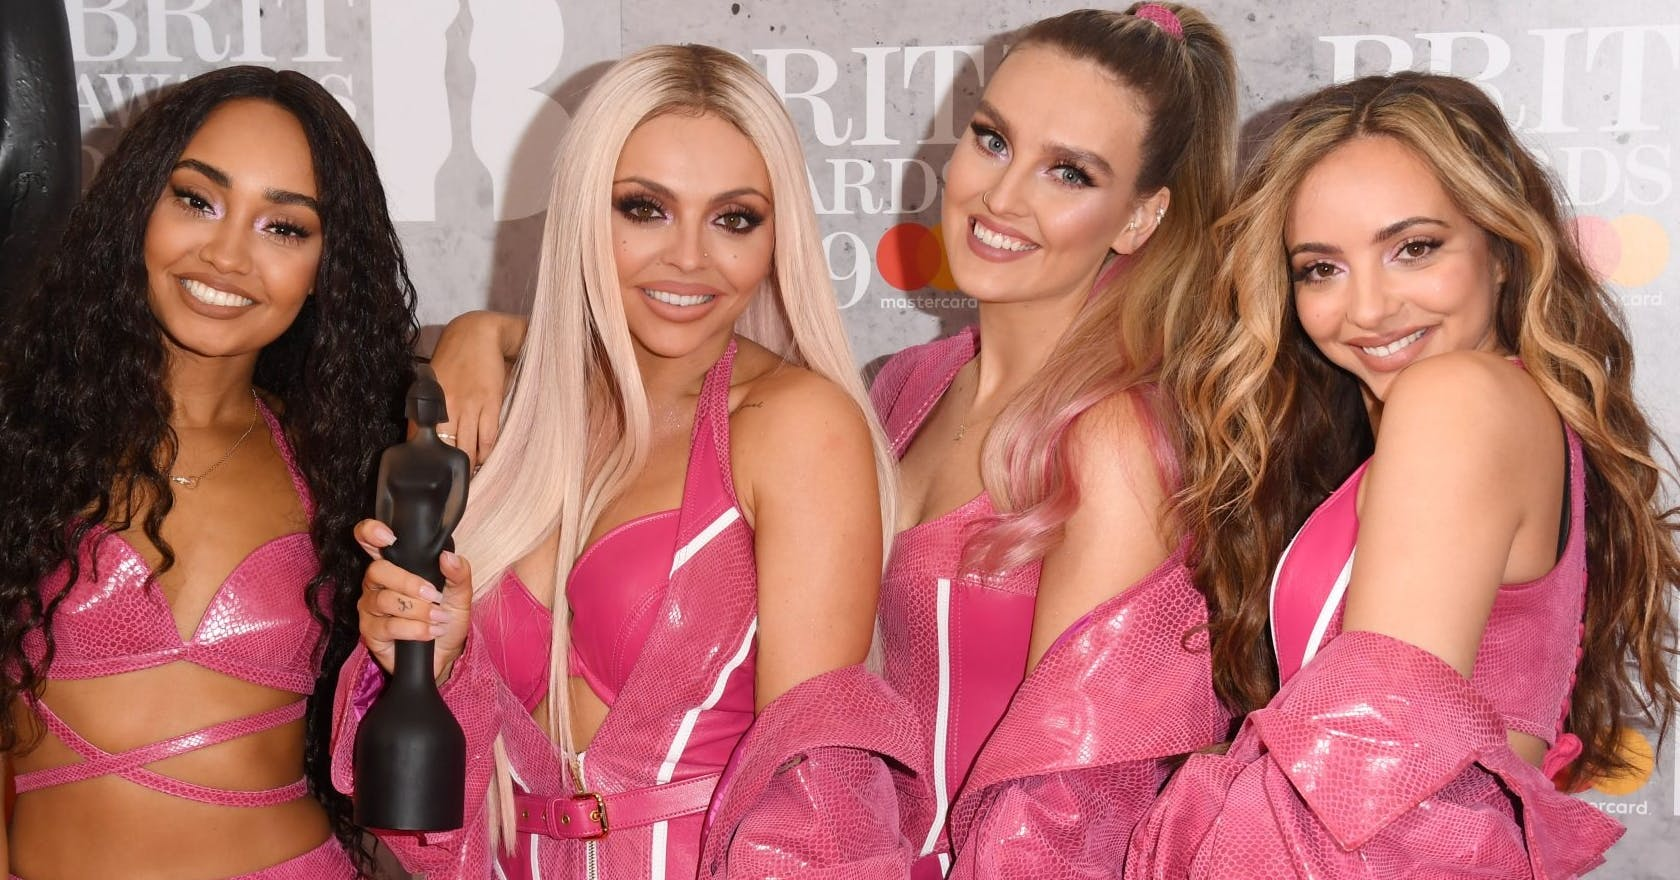 """Little Mix's comments about being told to """"flirt with men"""" for their careers are a wake-up call"""